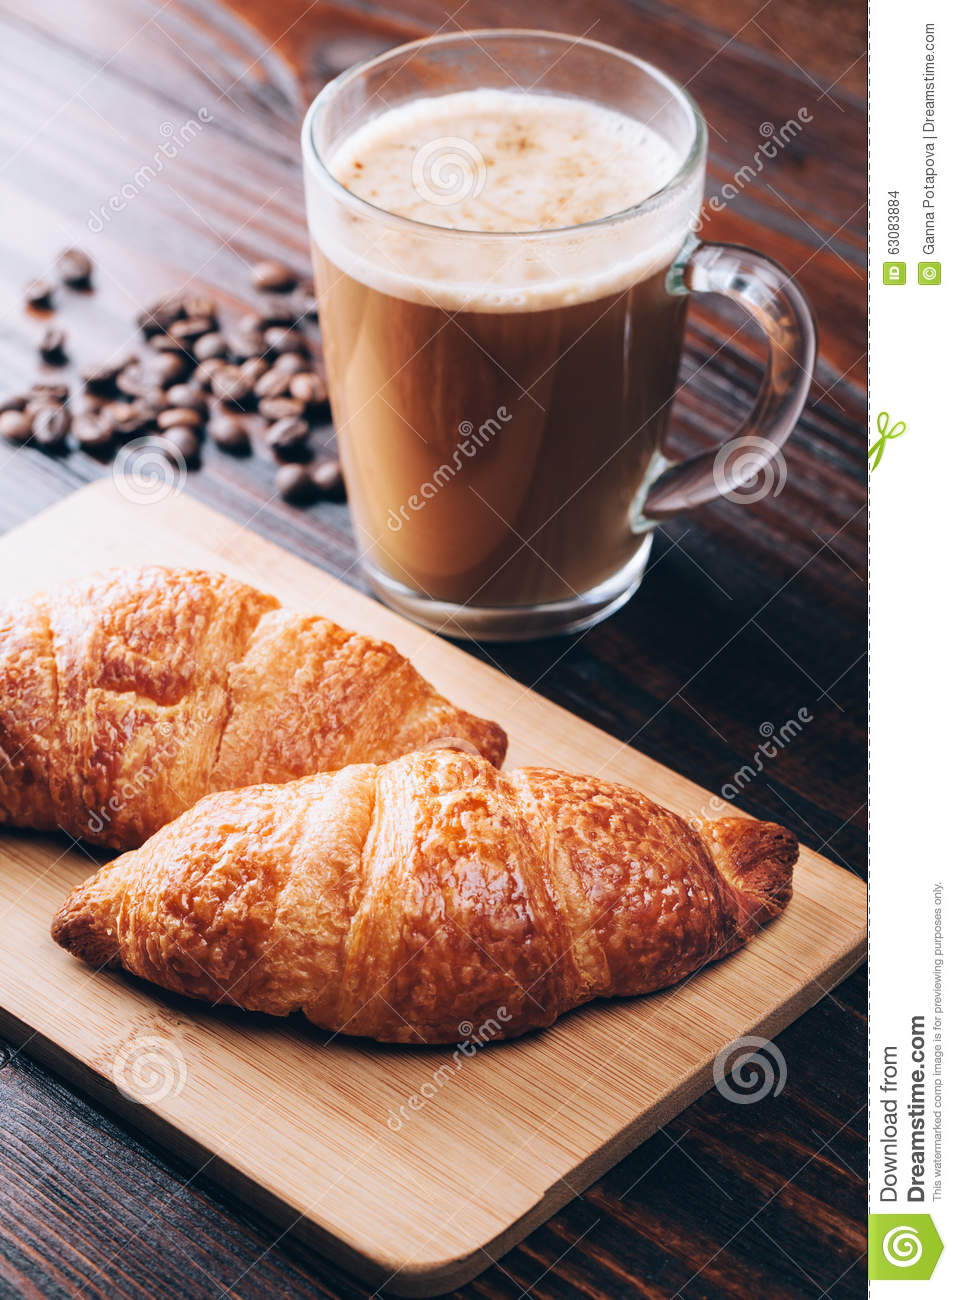 Download Café avec des croissants photo stock. Image du espresso - 63083884